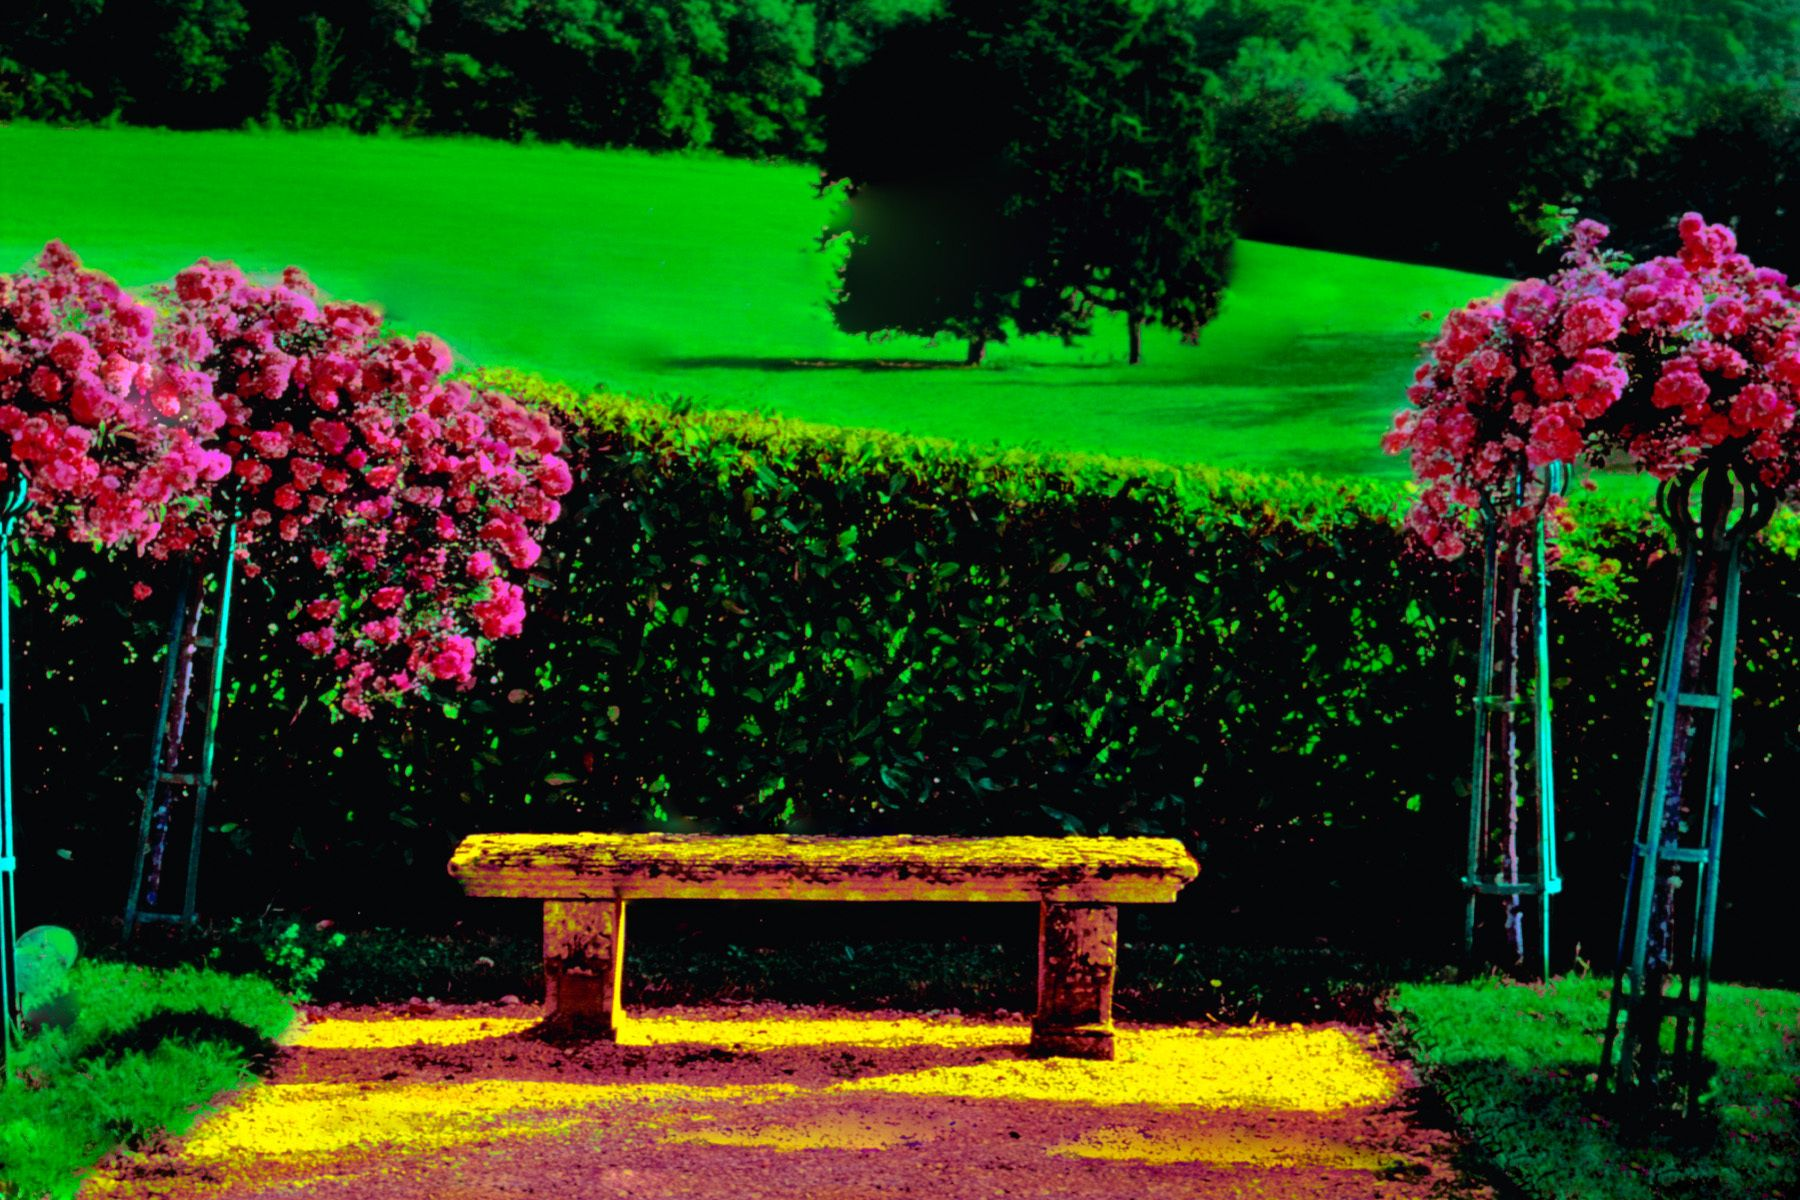 14_0_114_1i_gottlieb_french_bench.jpg